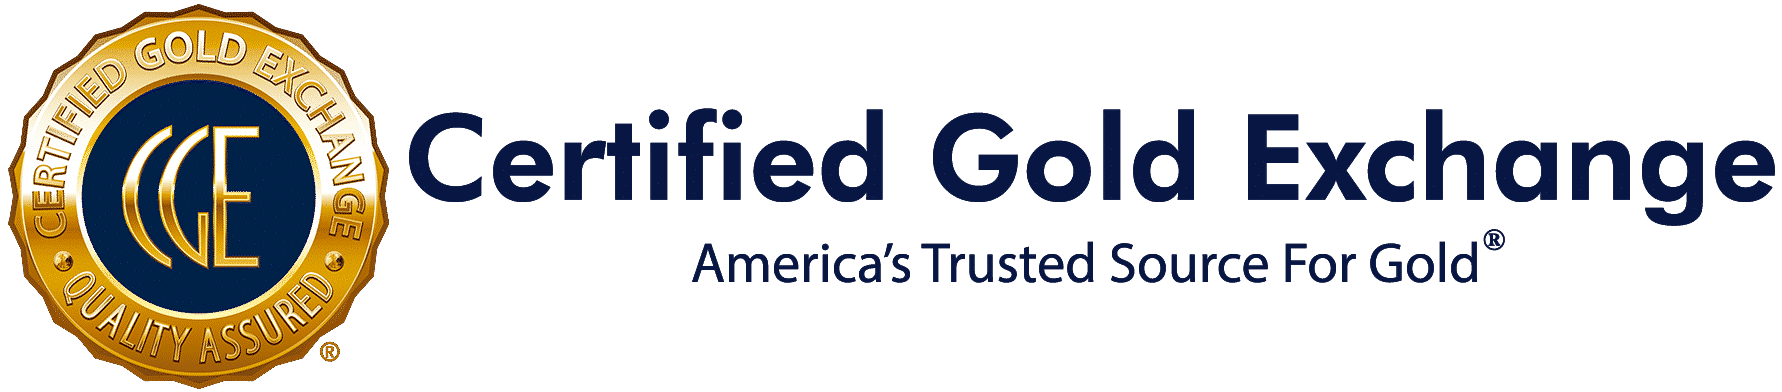 certified-gold-exchange-official-logo